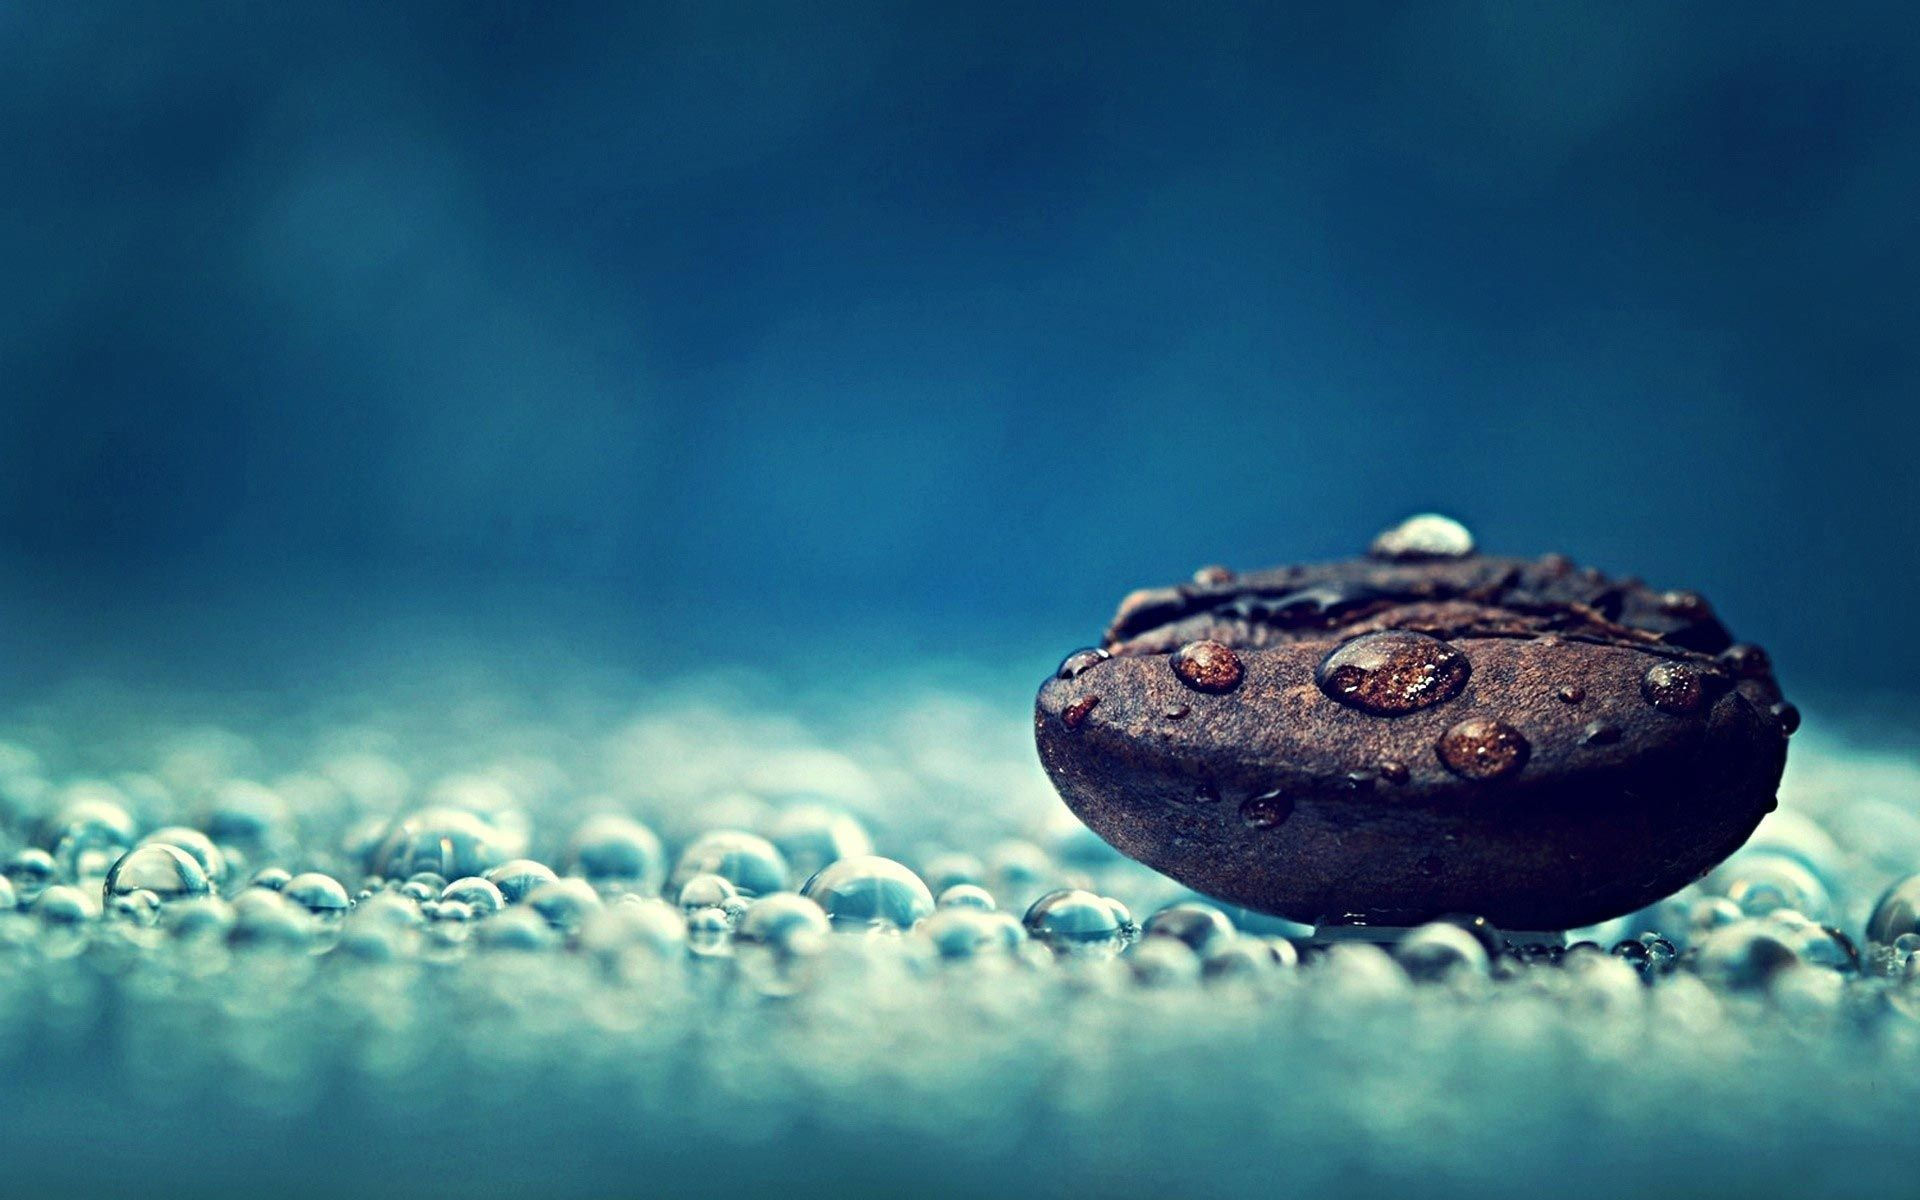 Macro Photography Wallpaper Hd Wallpapers For Pc Rain And Coffee